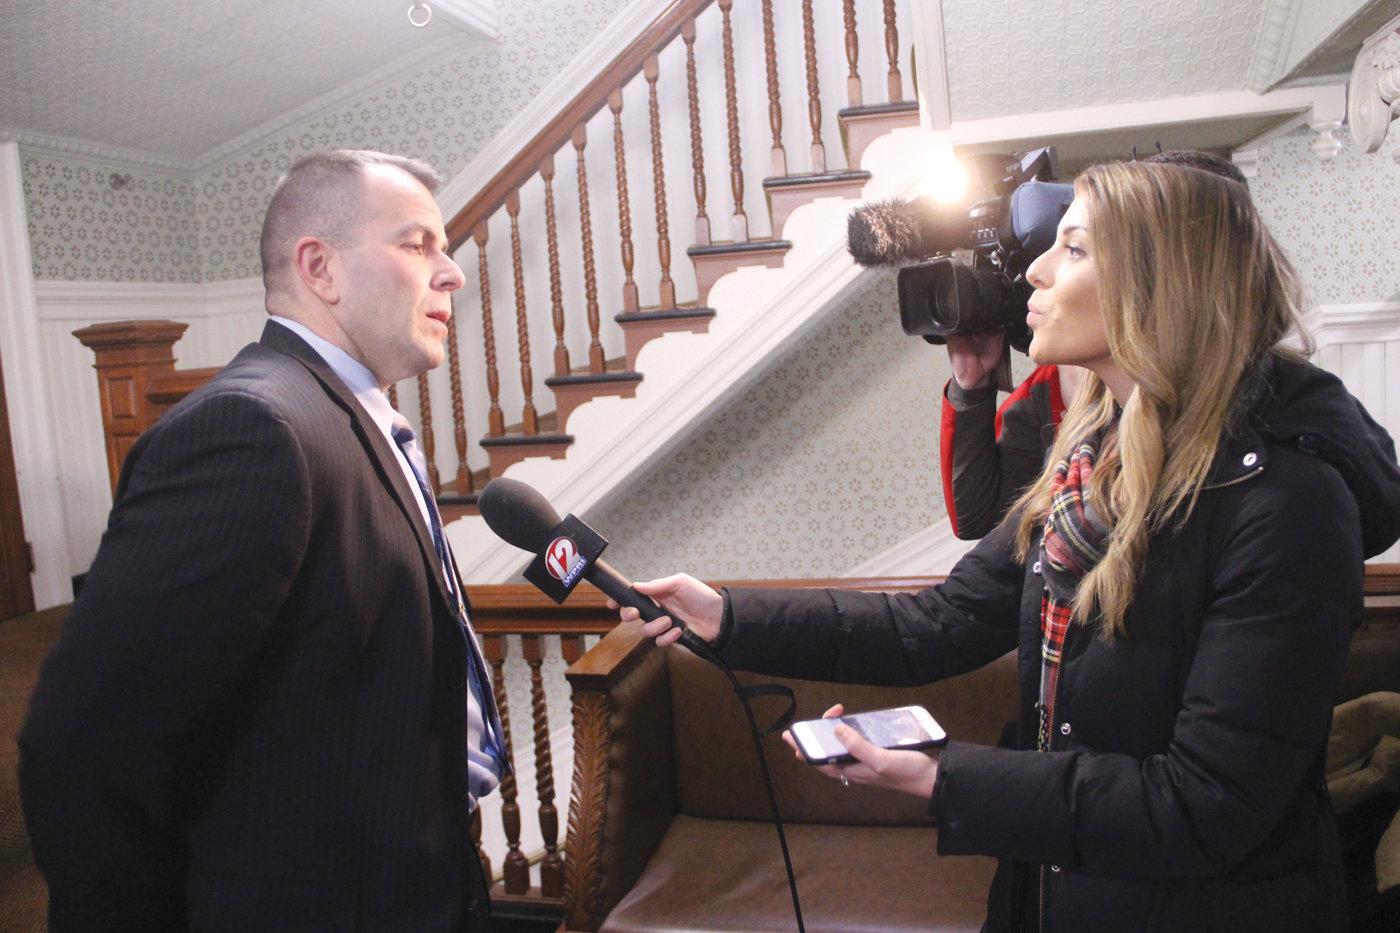 A VOTE...FINALLY: Michael Carreiro, president of the Warwick Firefighters, voices his relief that the months-long debate over a contract is over to WPRI Channel 12 reporter Carolyn Goggin following the council vote Monday.